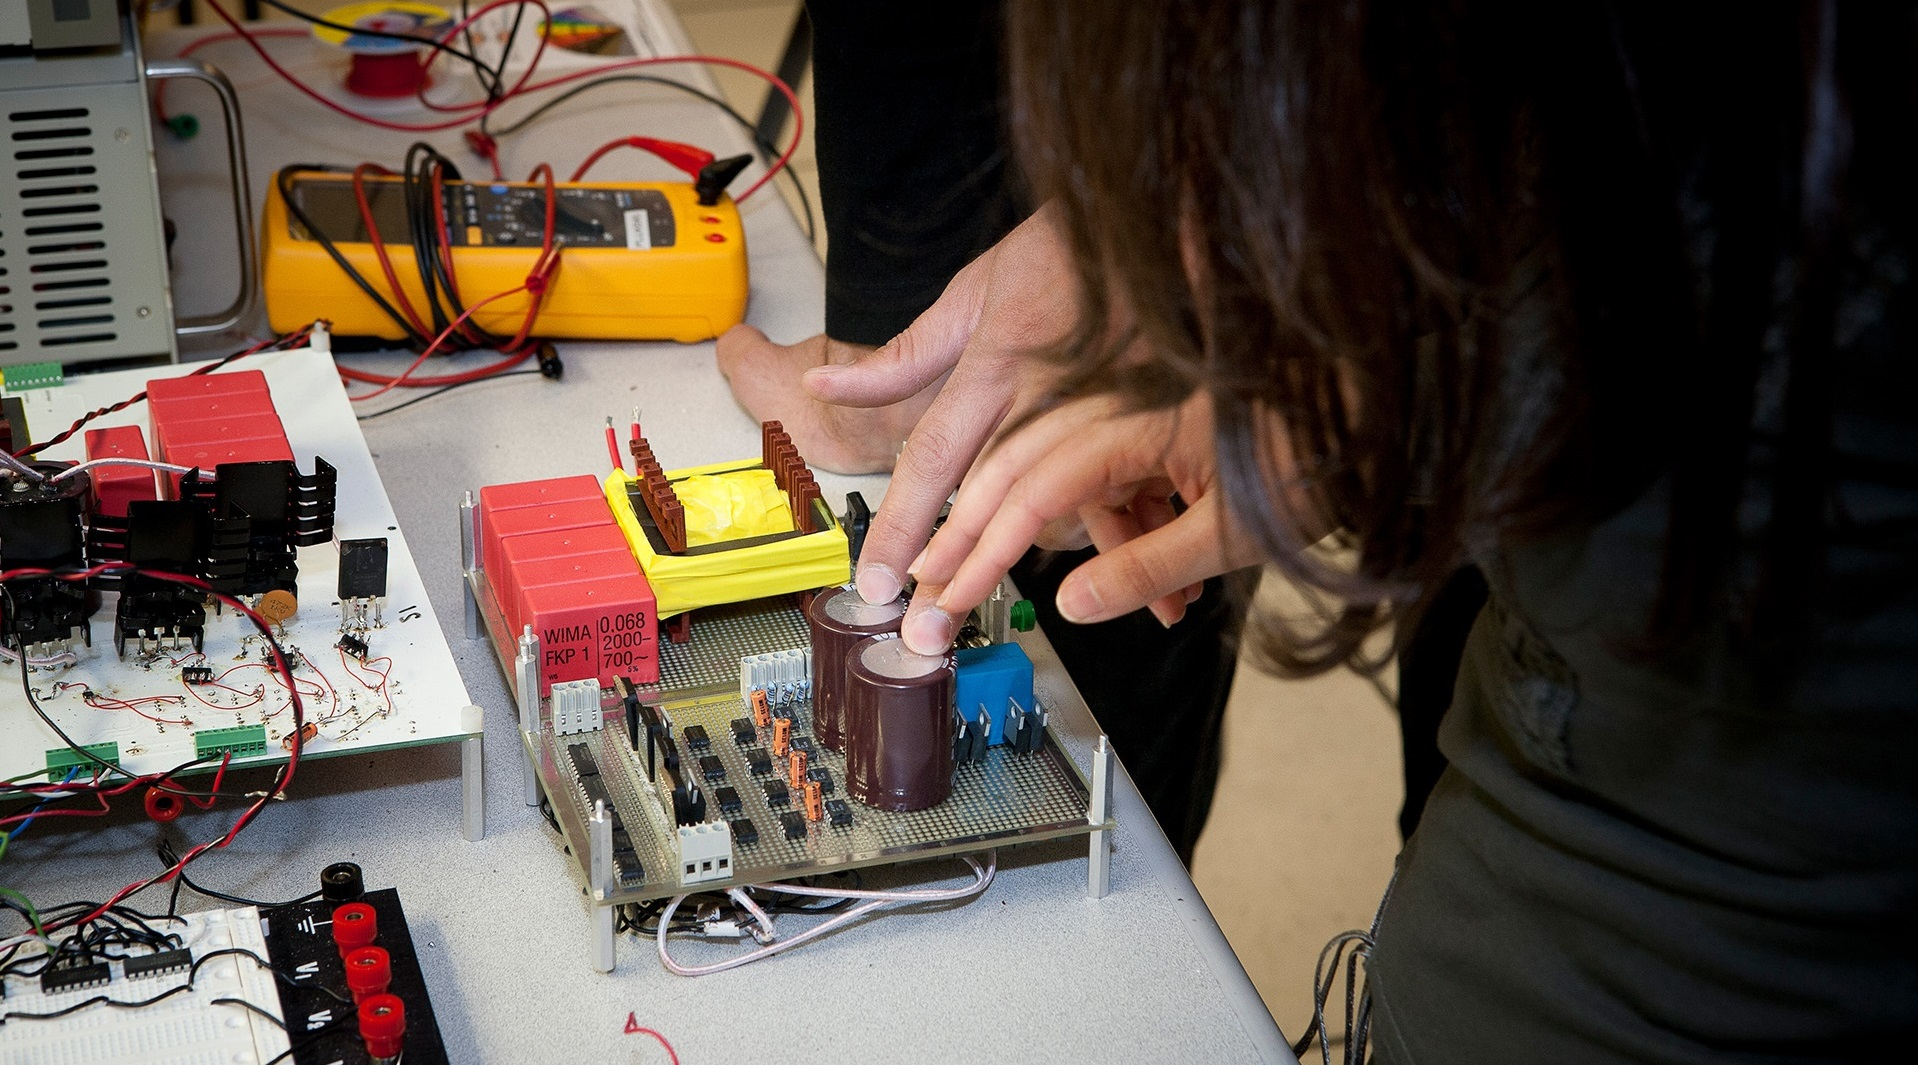 Hands-on in an Electrical and Computer Engineering lab